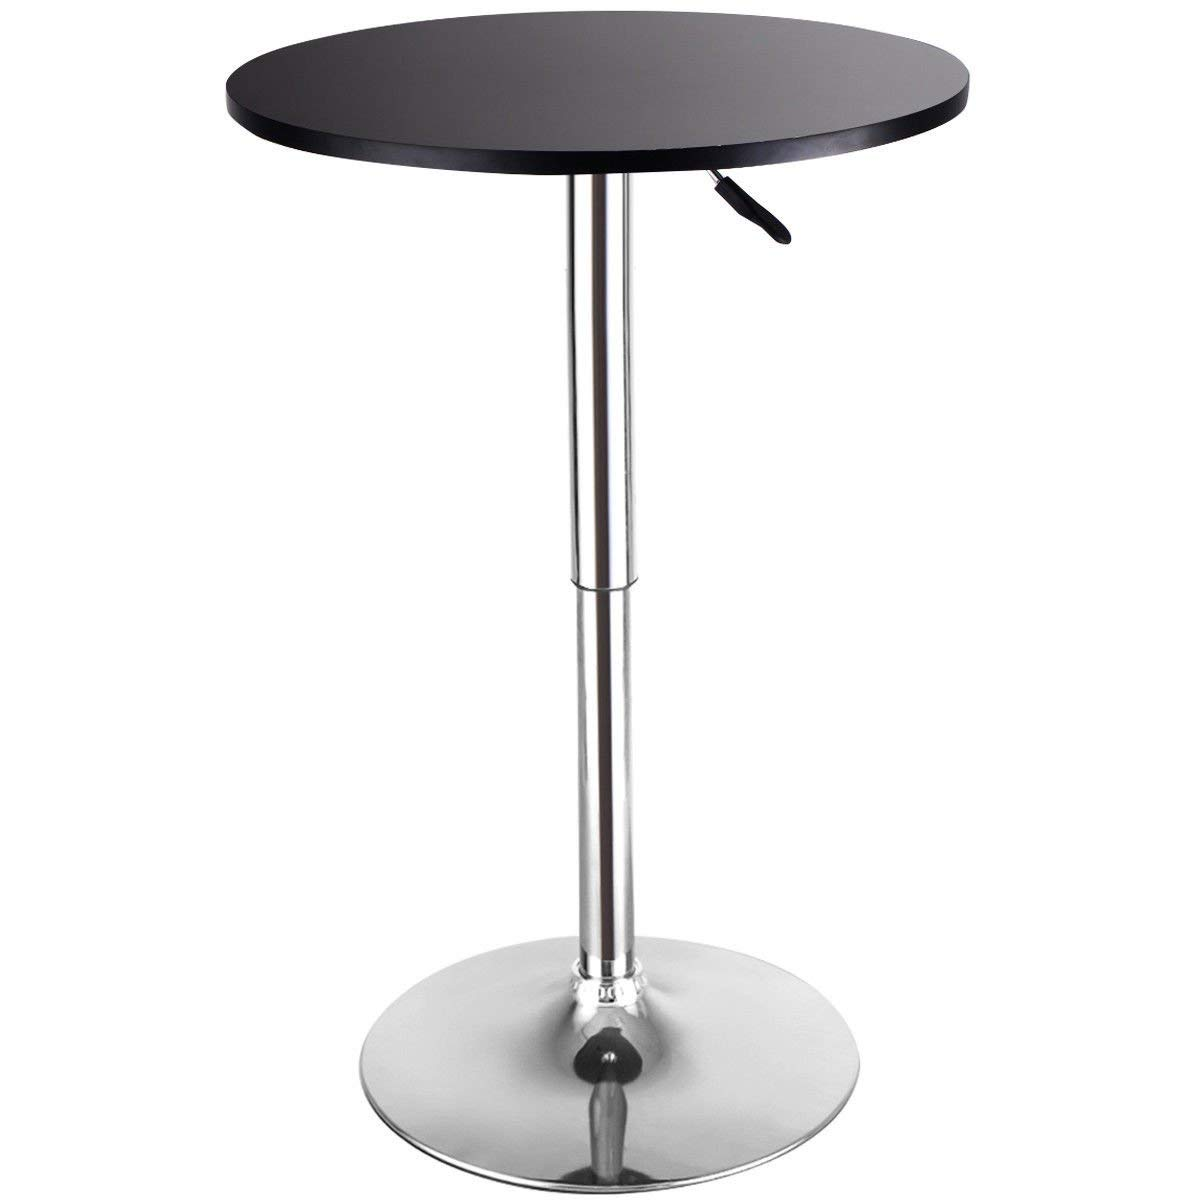 Costway Modern Round Bar Table, Cocktail Table Adjustable Bistro Pub Counter Wood Top Swivel Indoor (1) by COSTWAY